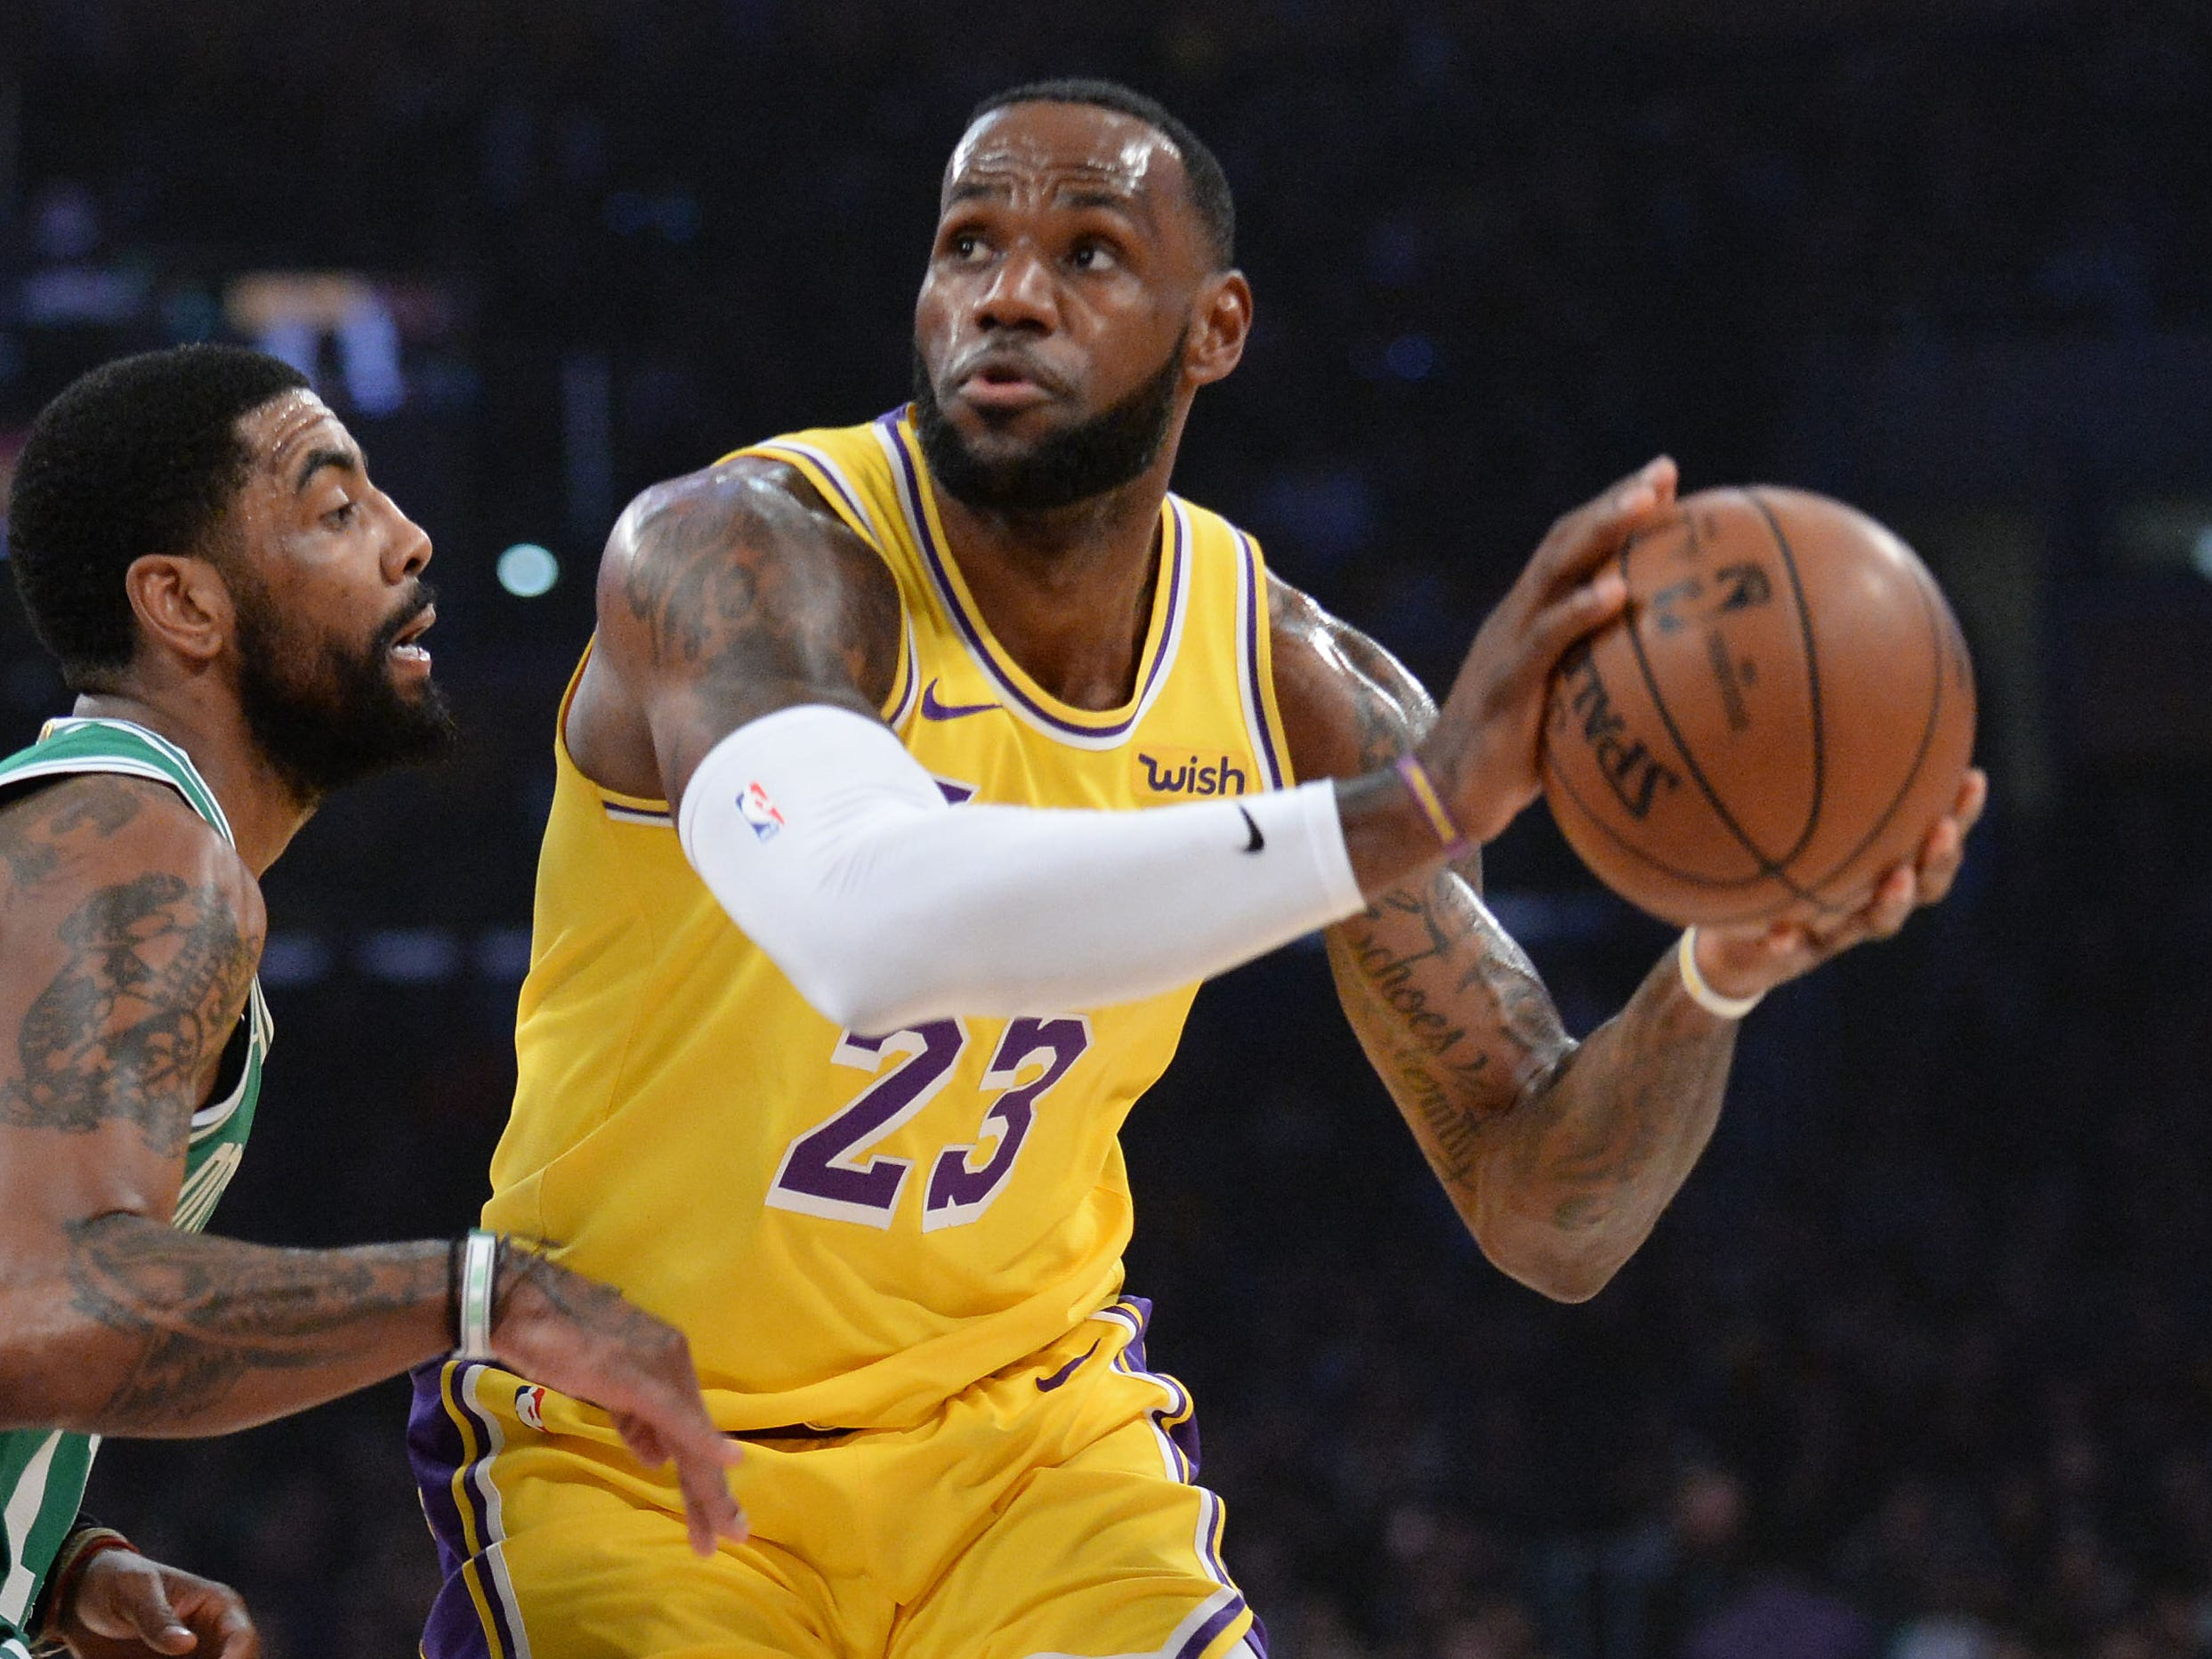 96. LeBron James, Lakers (March 9): 30 points, 12 assists, 10 rebounds in 120-107 loss to Celtics (seventh of season).